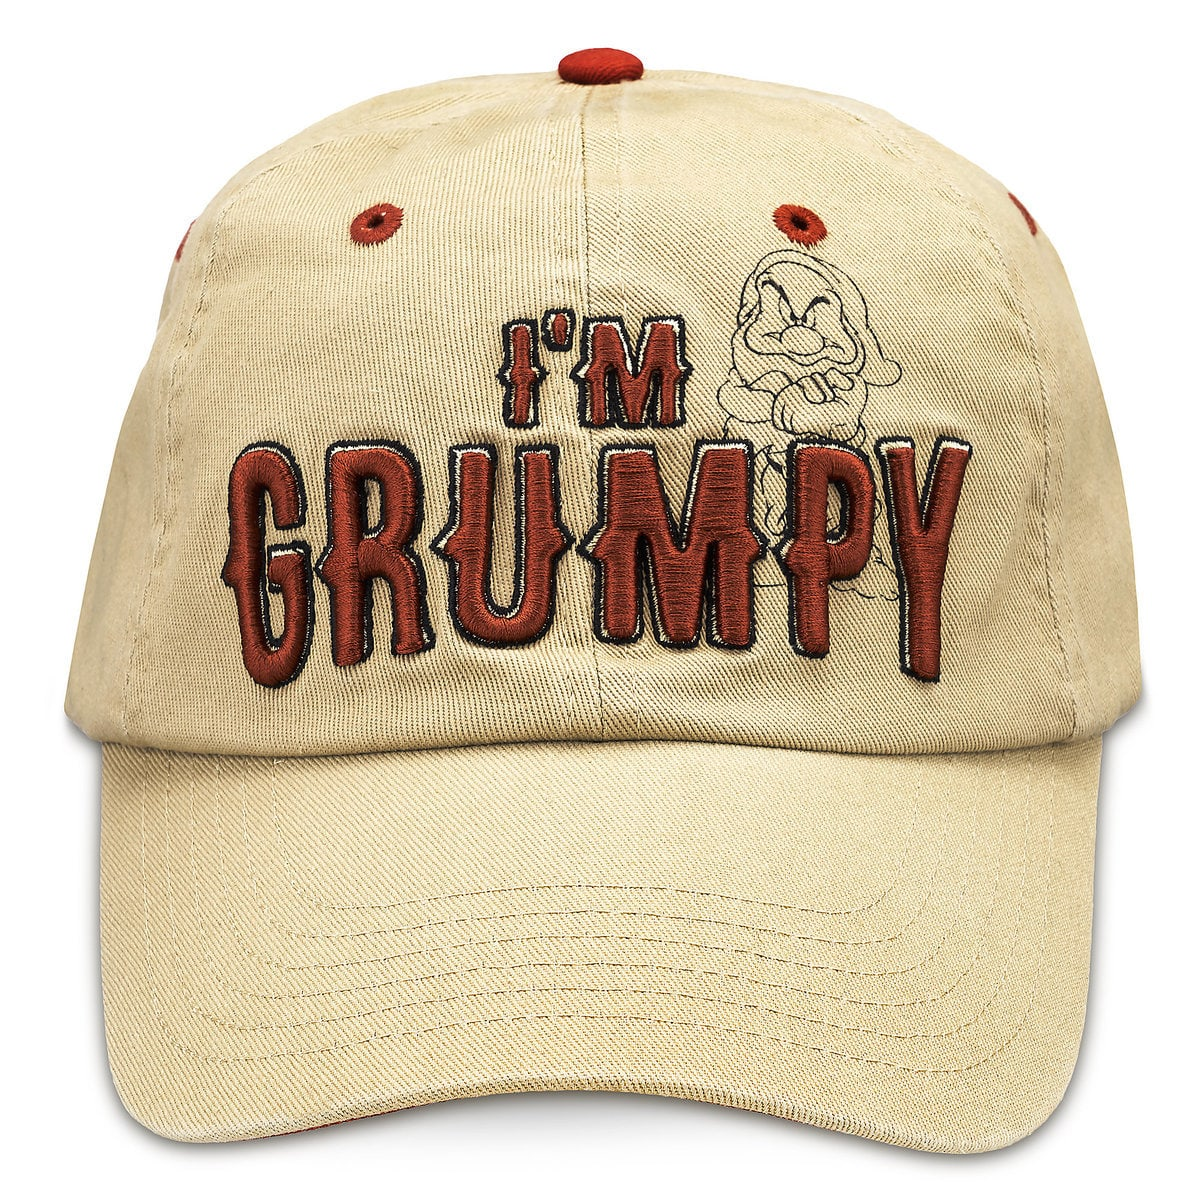 4ce642d5d87 Product Image of Grumpy Baseball Cap for Adults   1